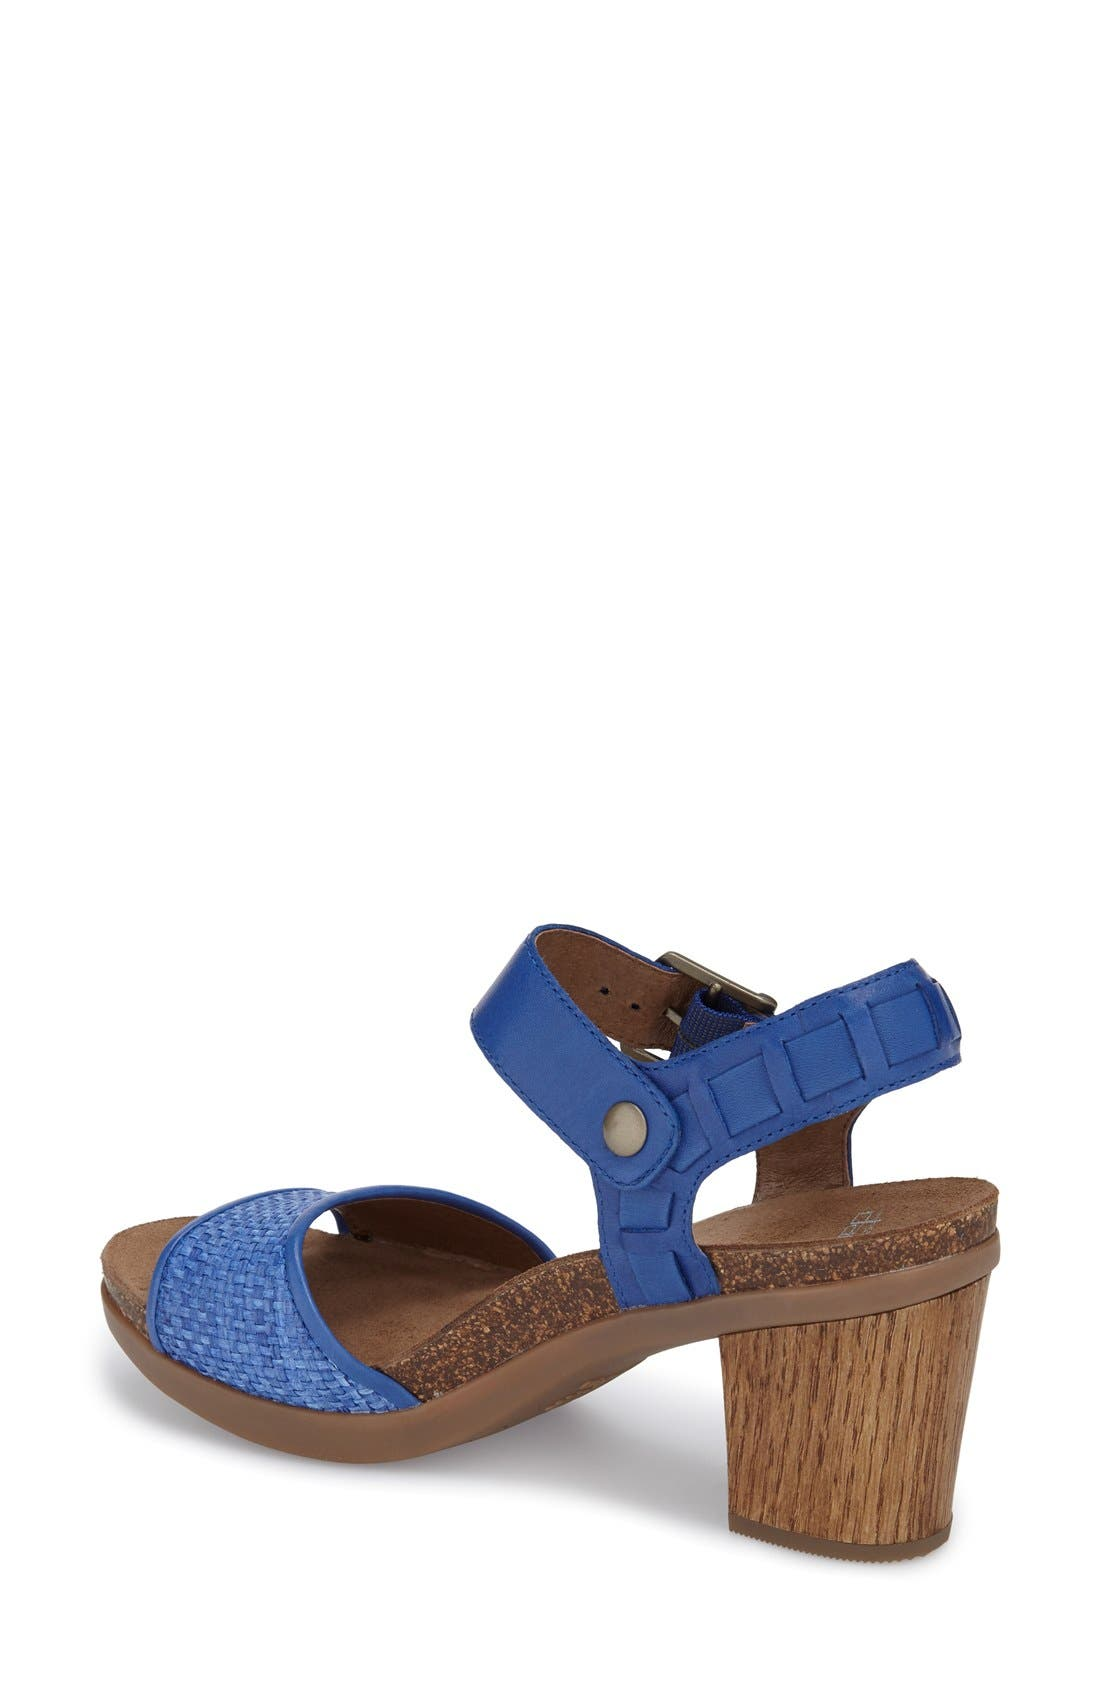 'Debby' Platform Sandal,                             Alternate thumbnail 6, color,